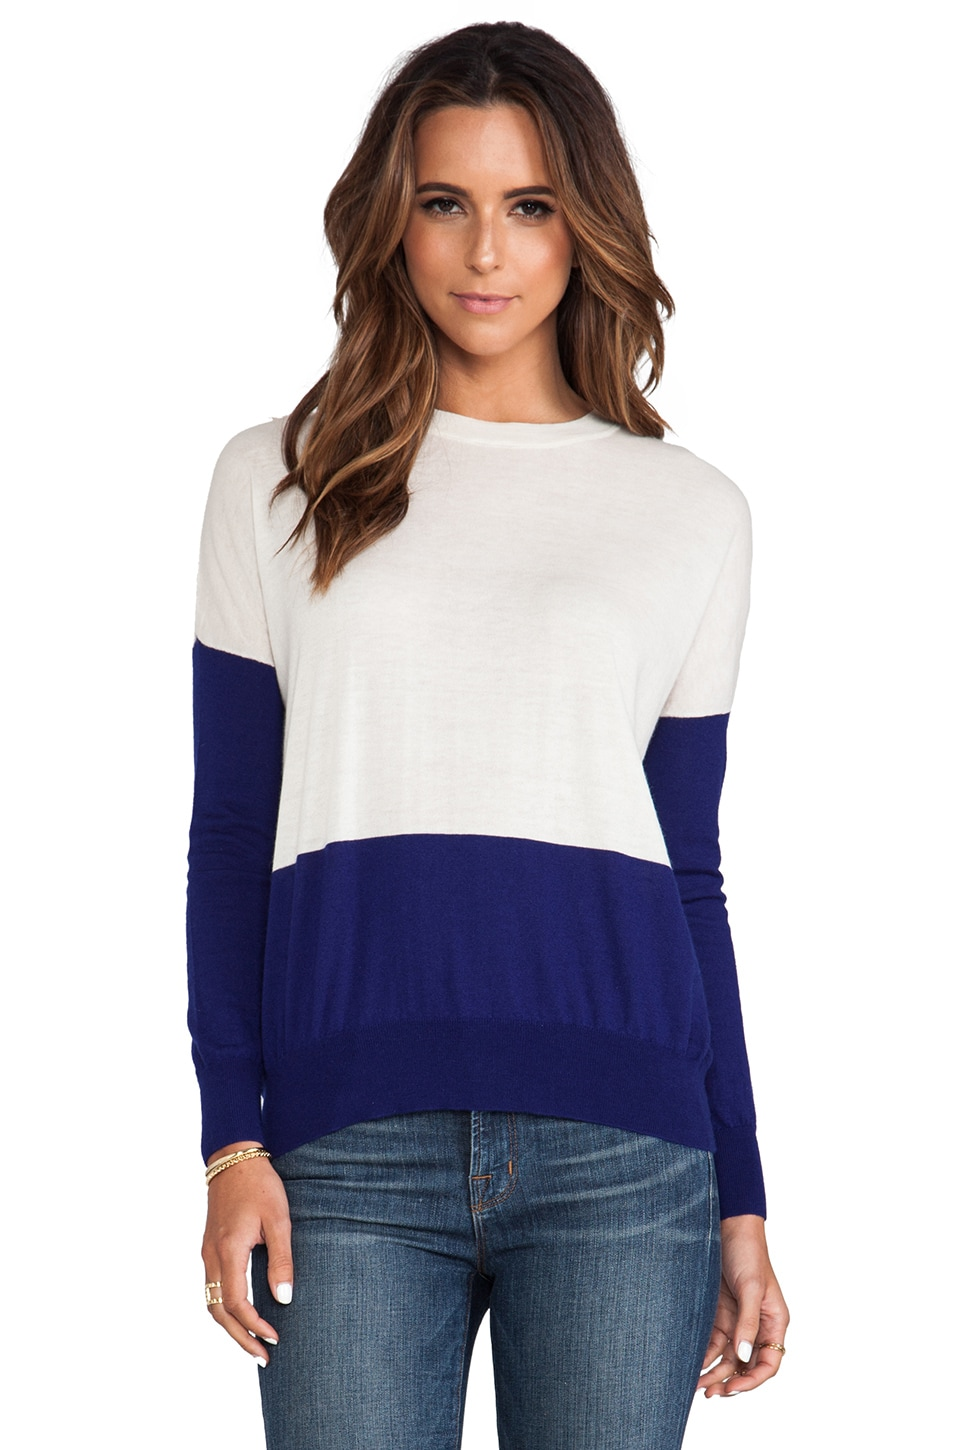 DemyLee Kellen Cashmere Sweater in White & Marine